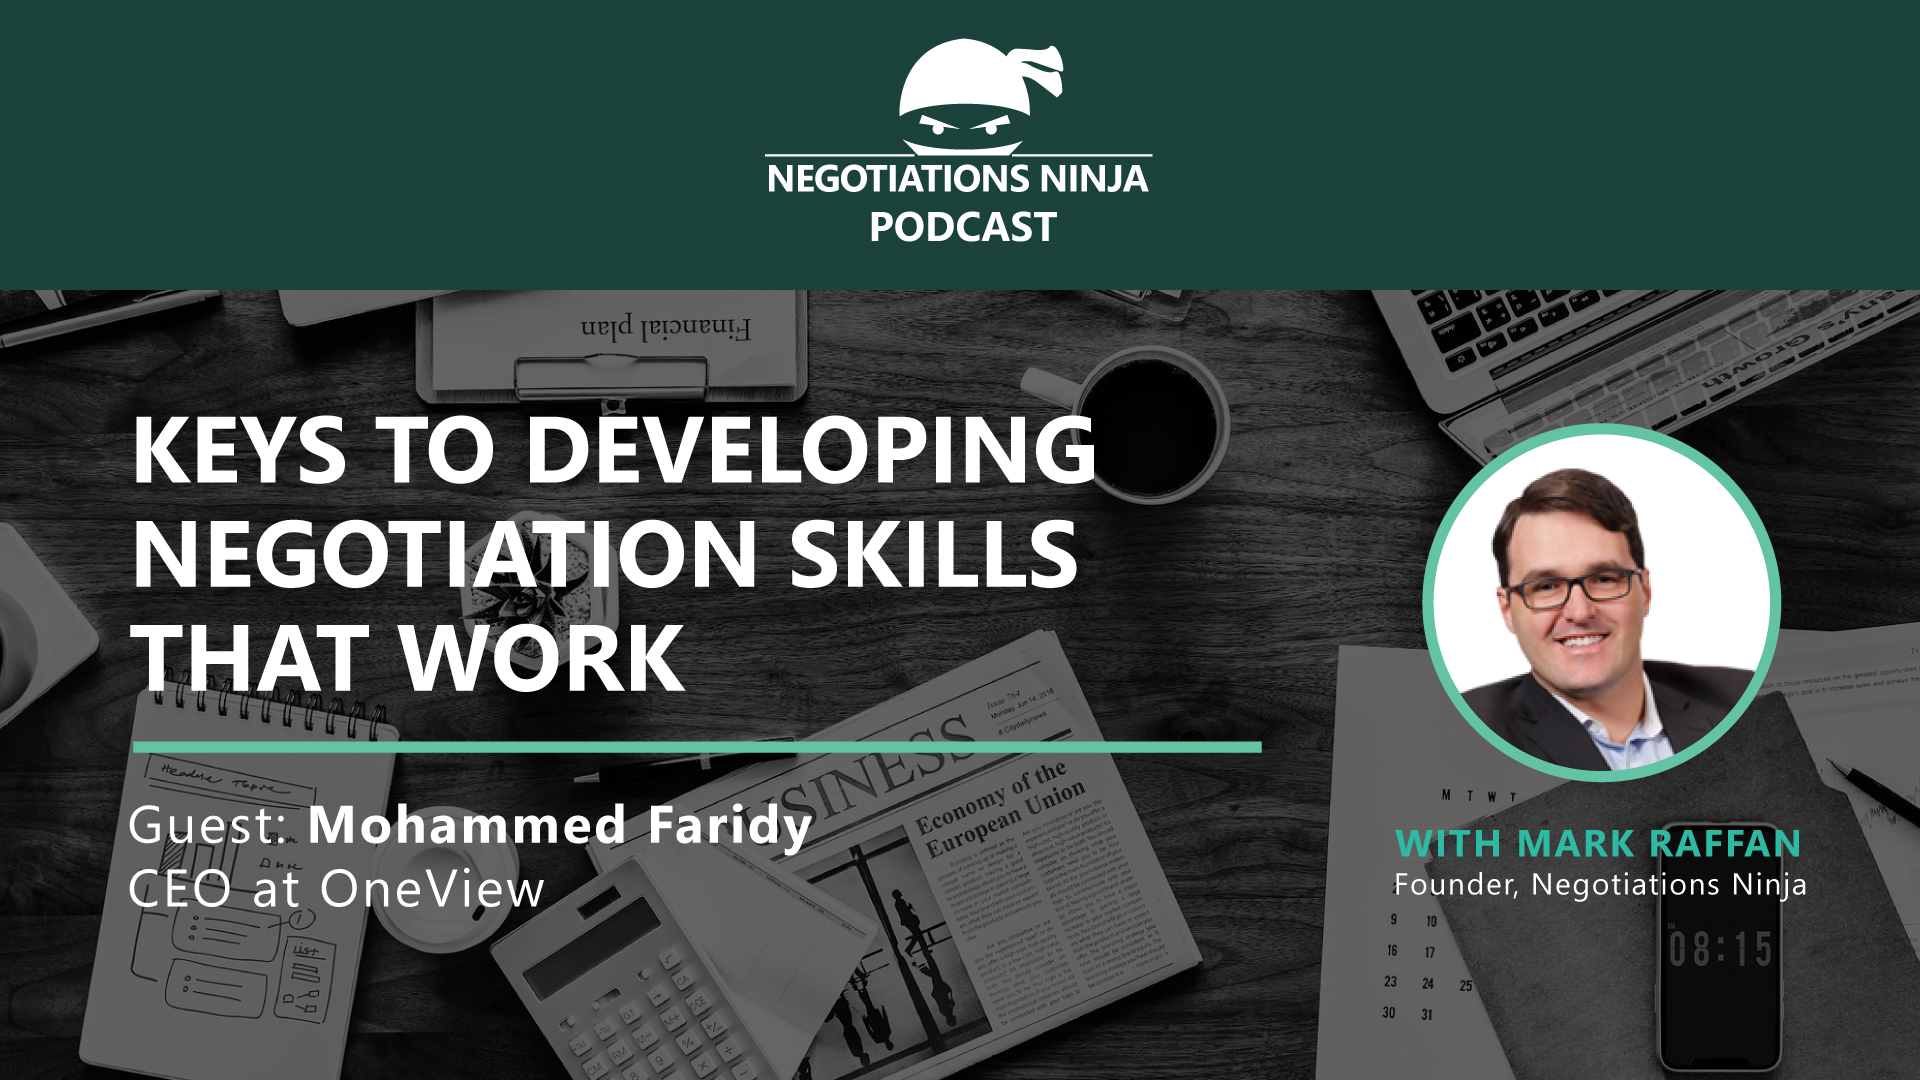 Keys to developing negotiation skills that work-Mohammed Faridy